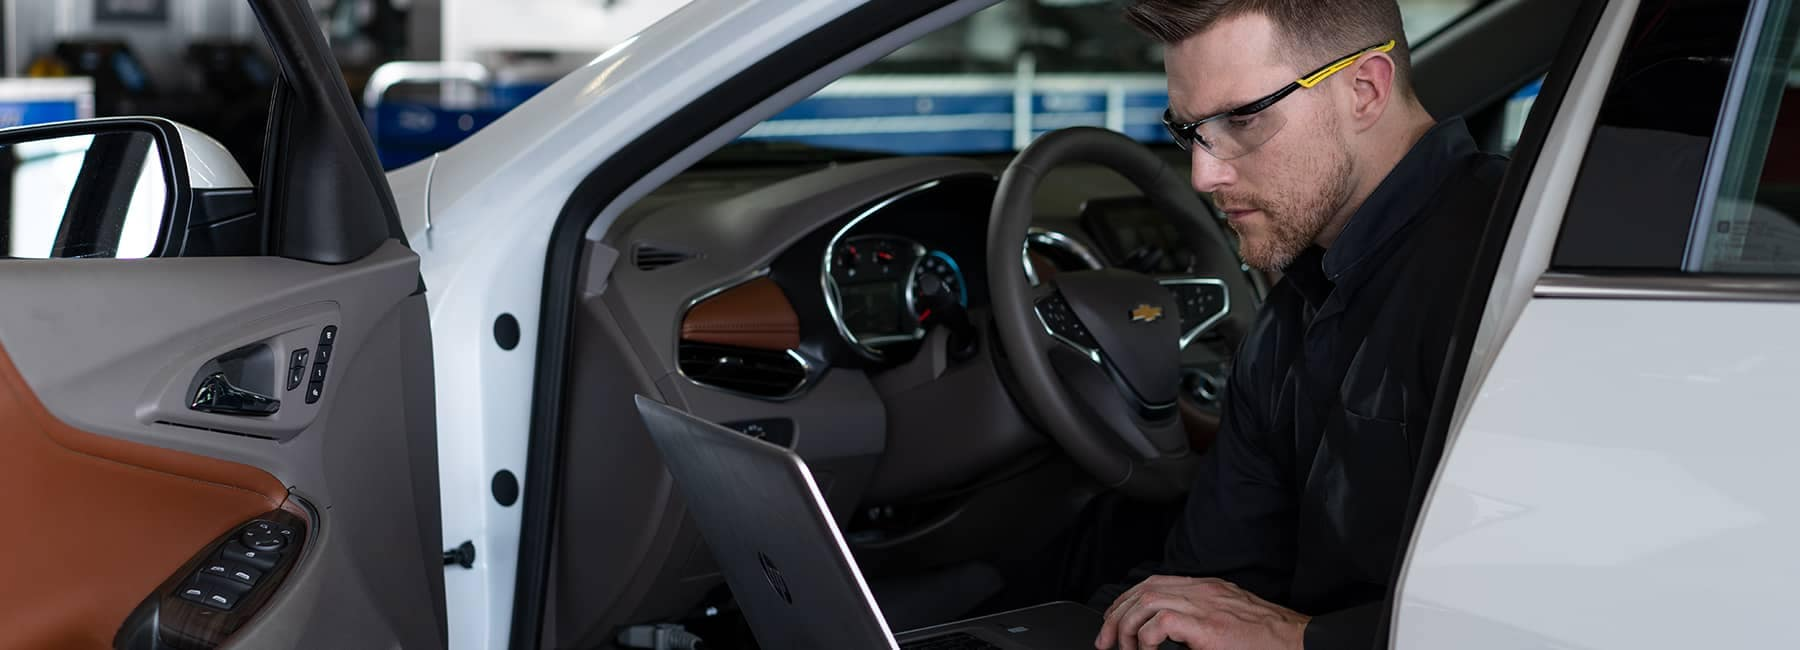 Chevrolet service technician sitting in a car looking at his laptop